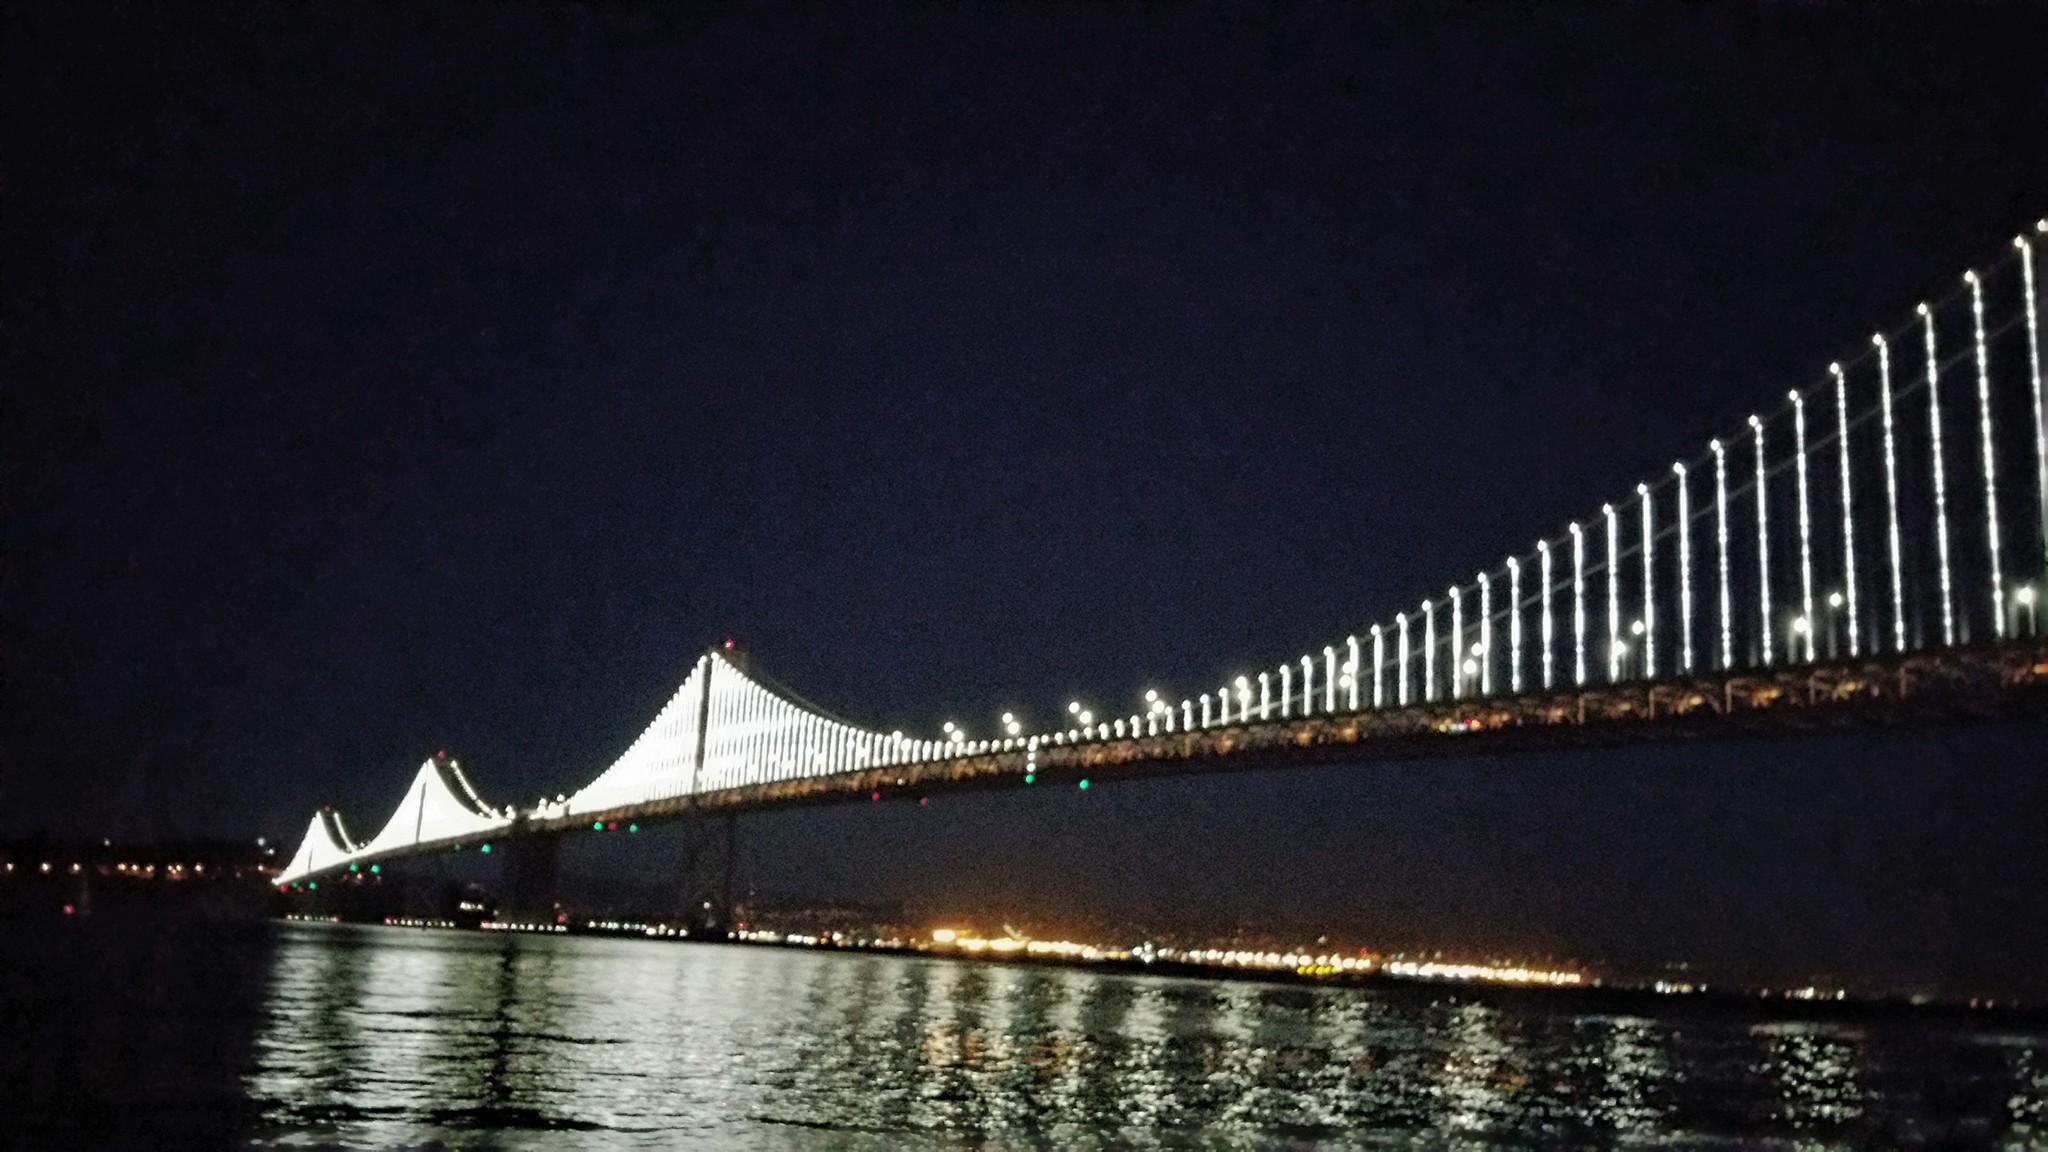 Bay Bridge lights at night, San Francisco.